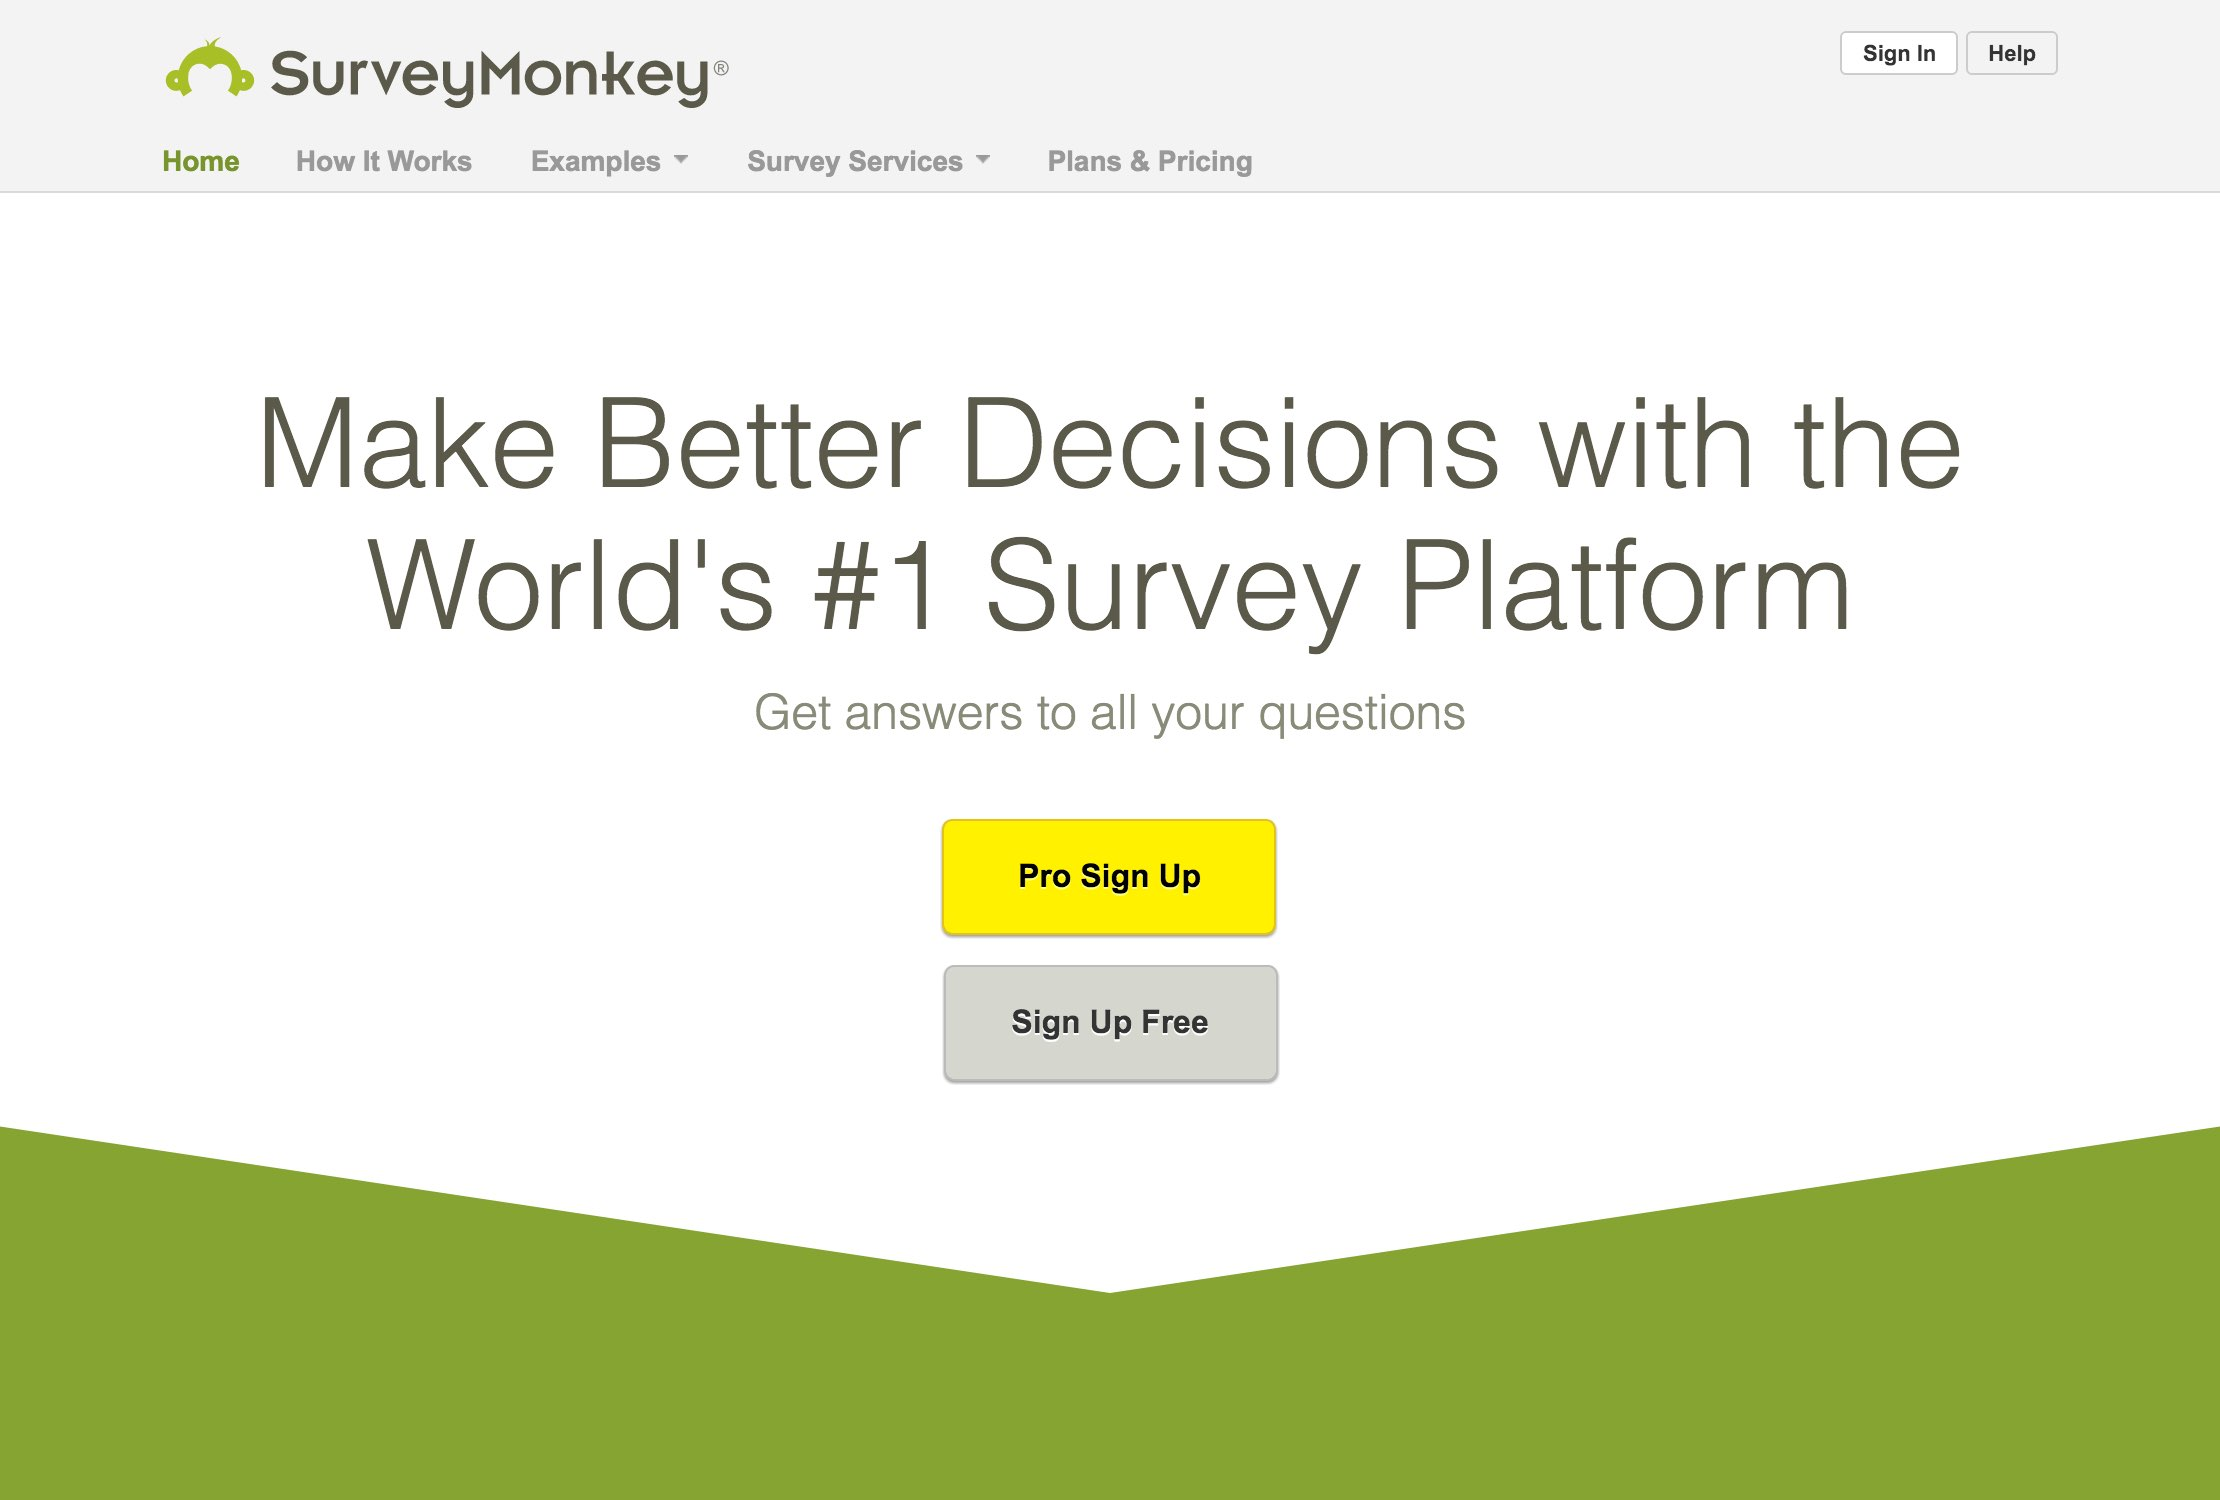 Swiftype Search for SurveyMonkey